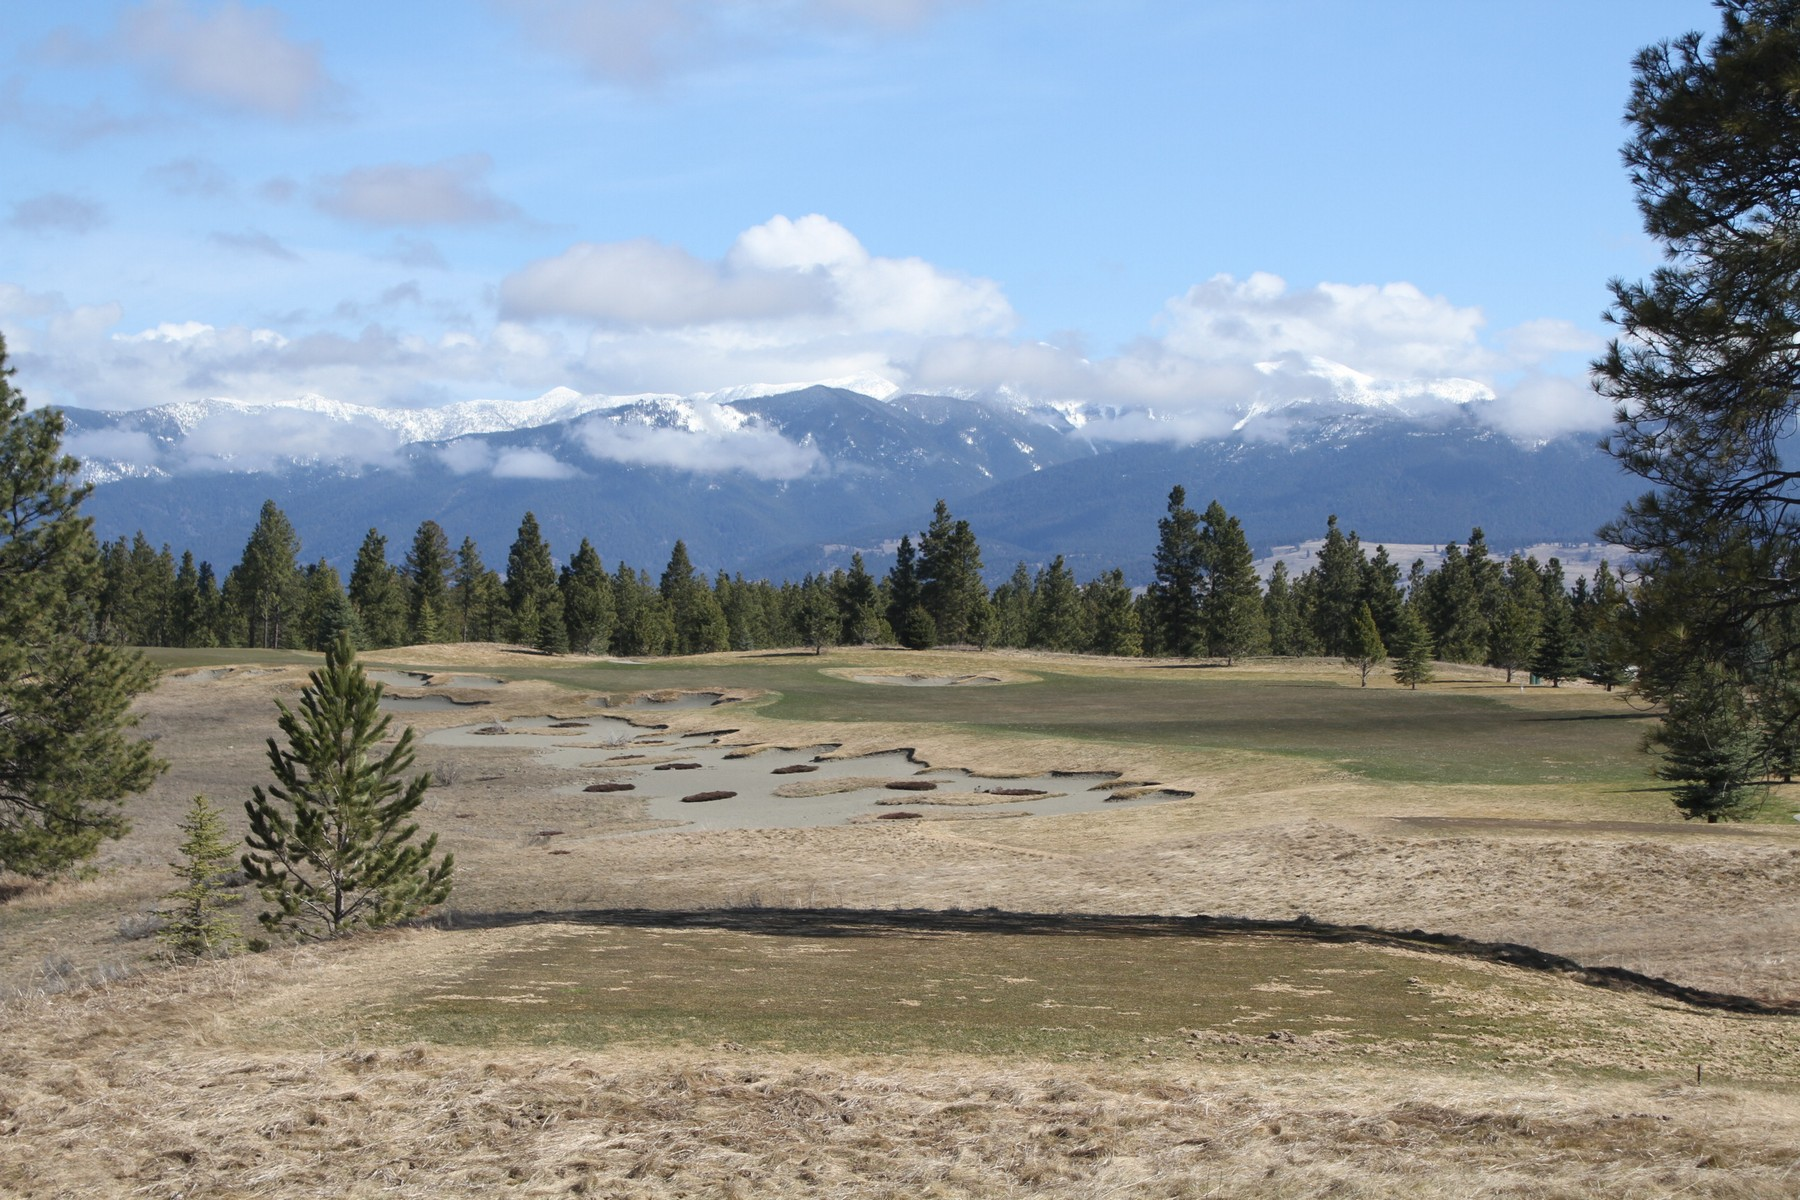 Land for Sale at Wilderness Club Drive, 223A, Eureka, MT 59917 Wilderness Club Dr 223A Eureka, Montana 59917 United States